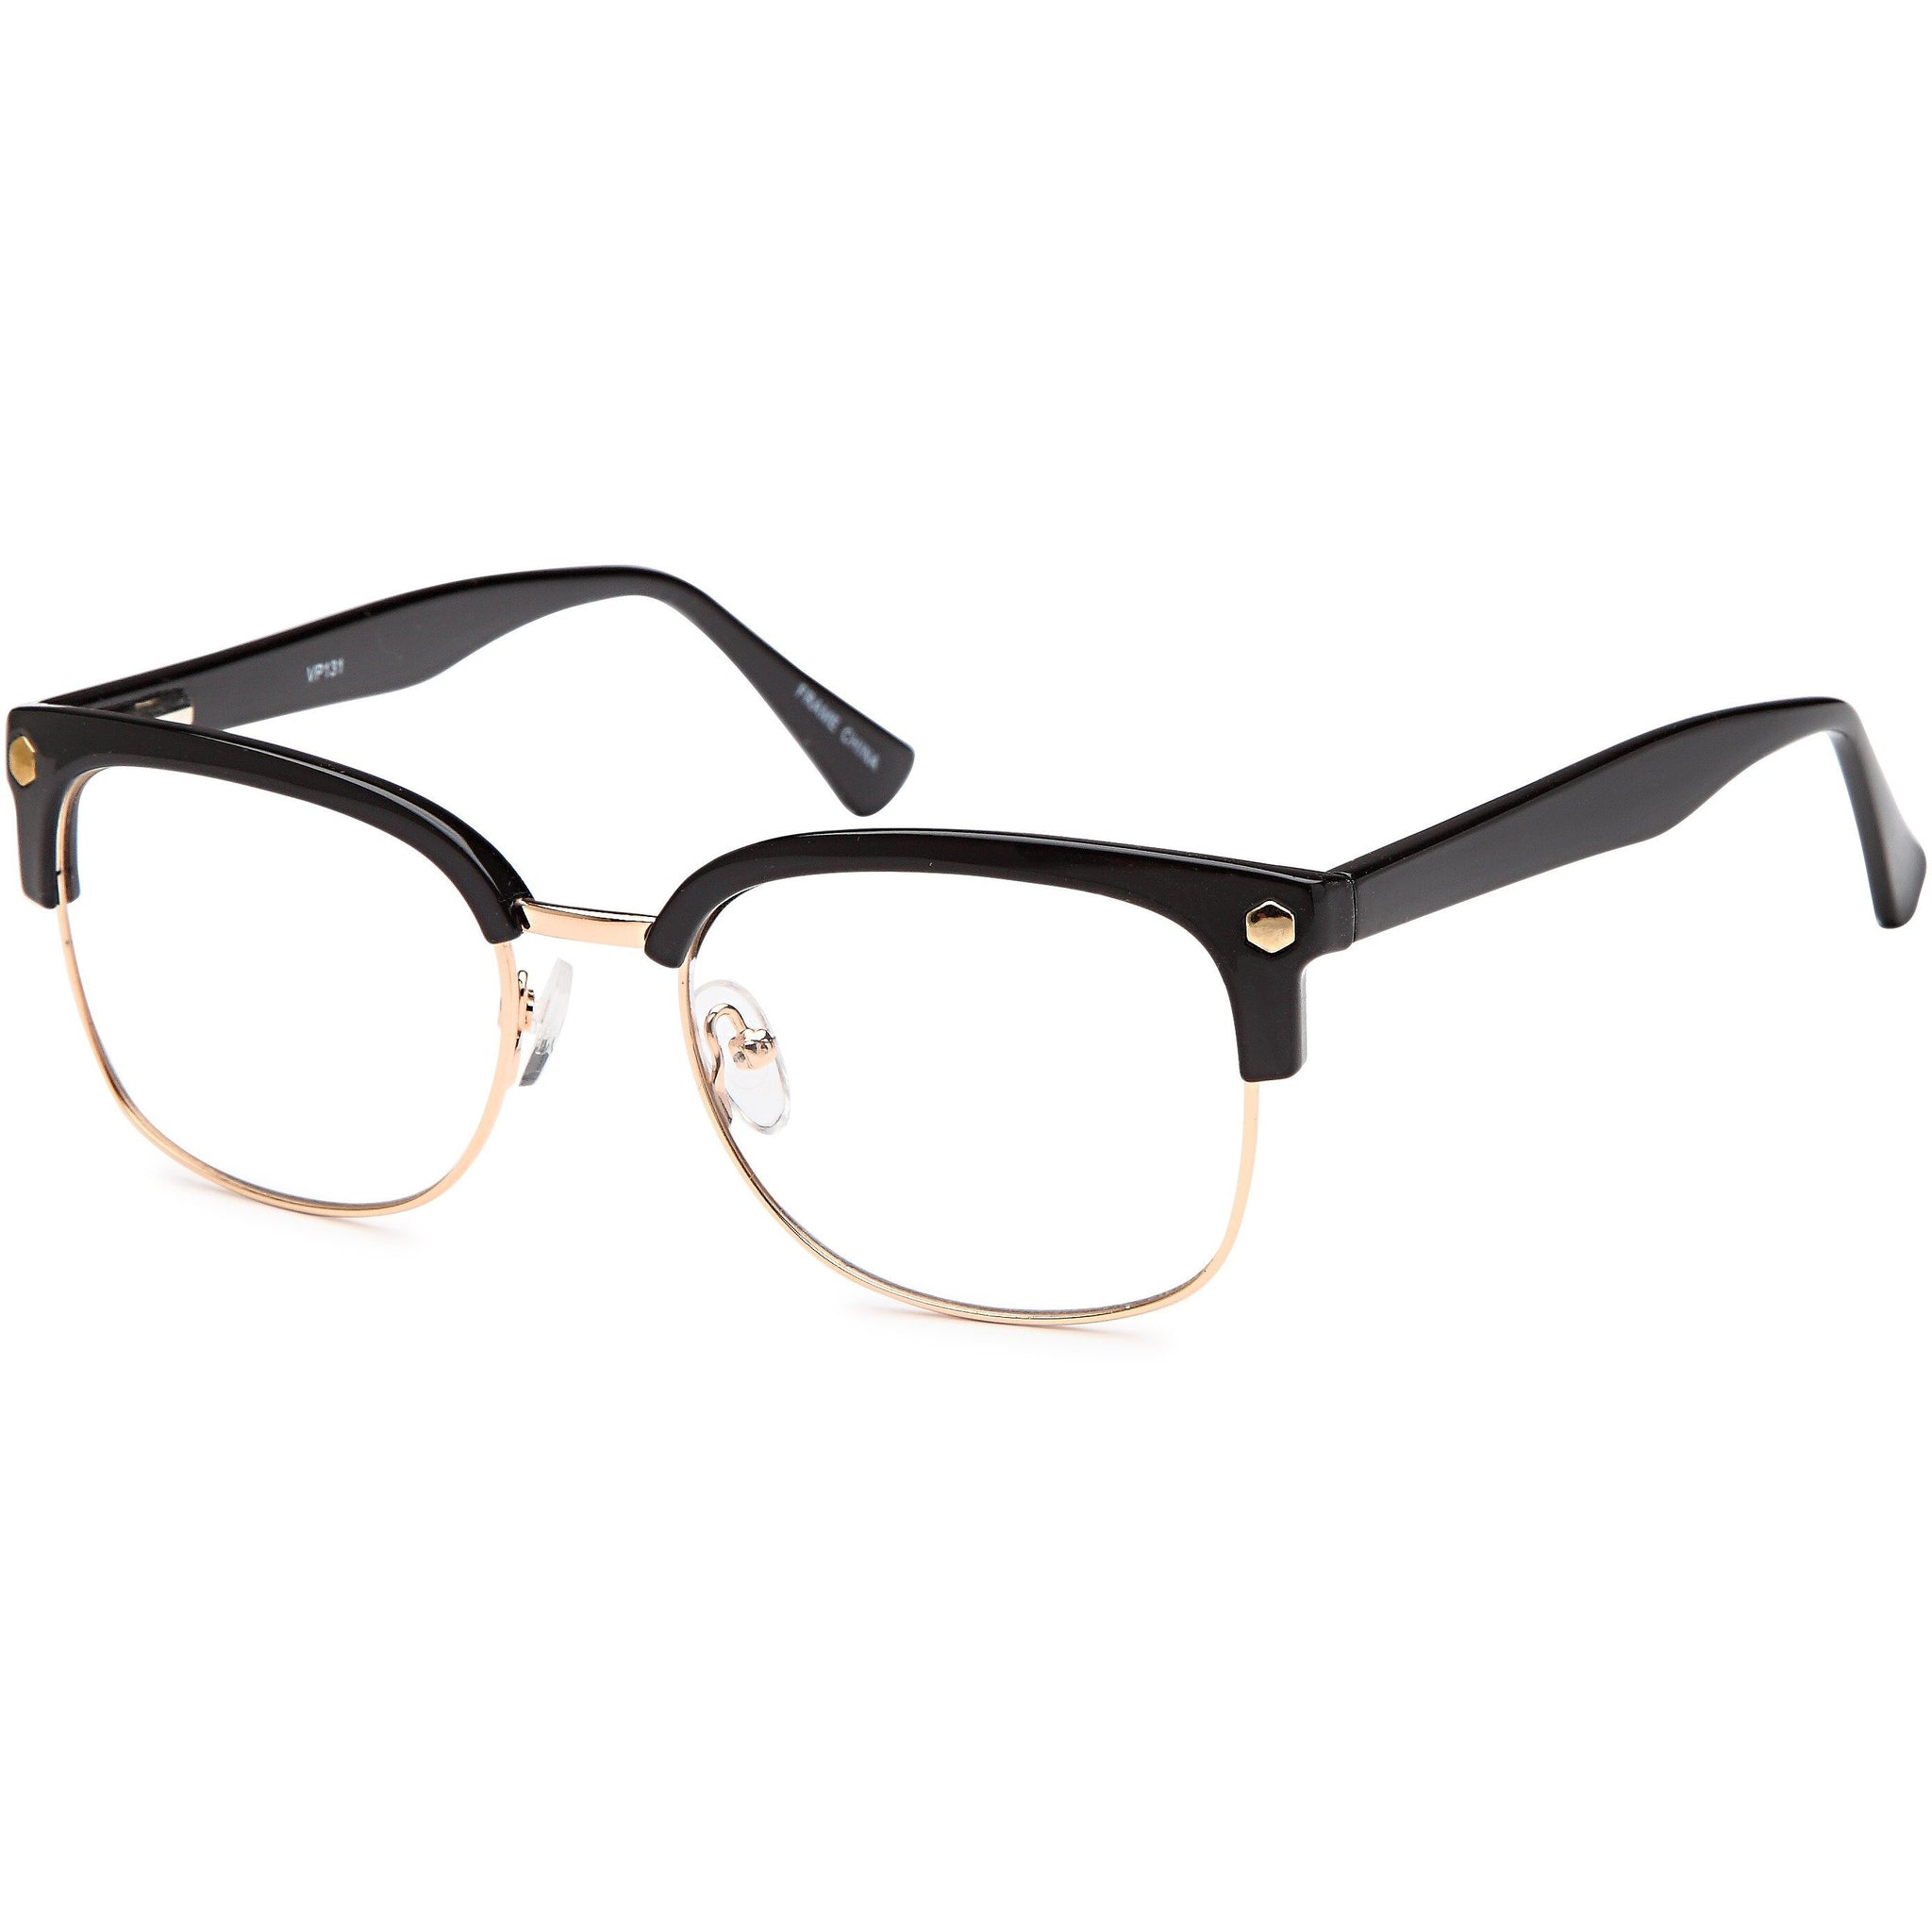 GEN Y Prescription Glasses VP 131 Eyeglasses Frame